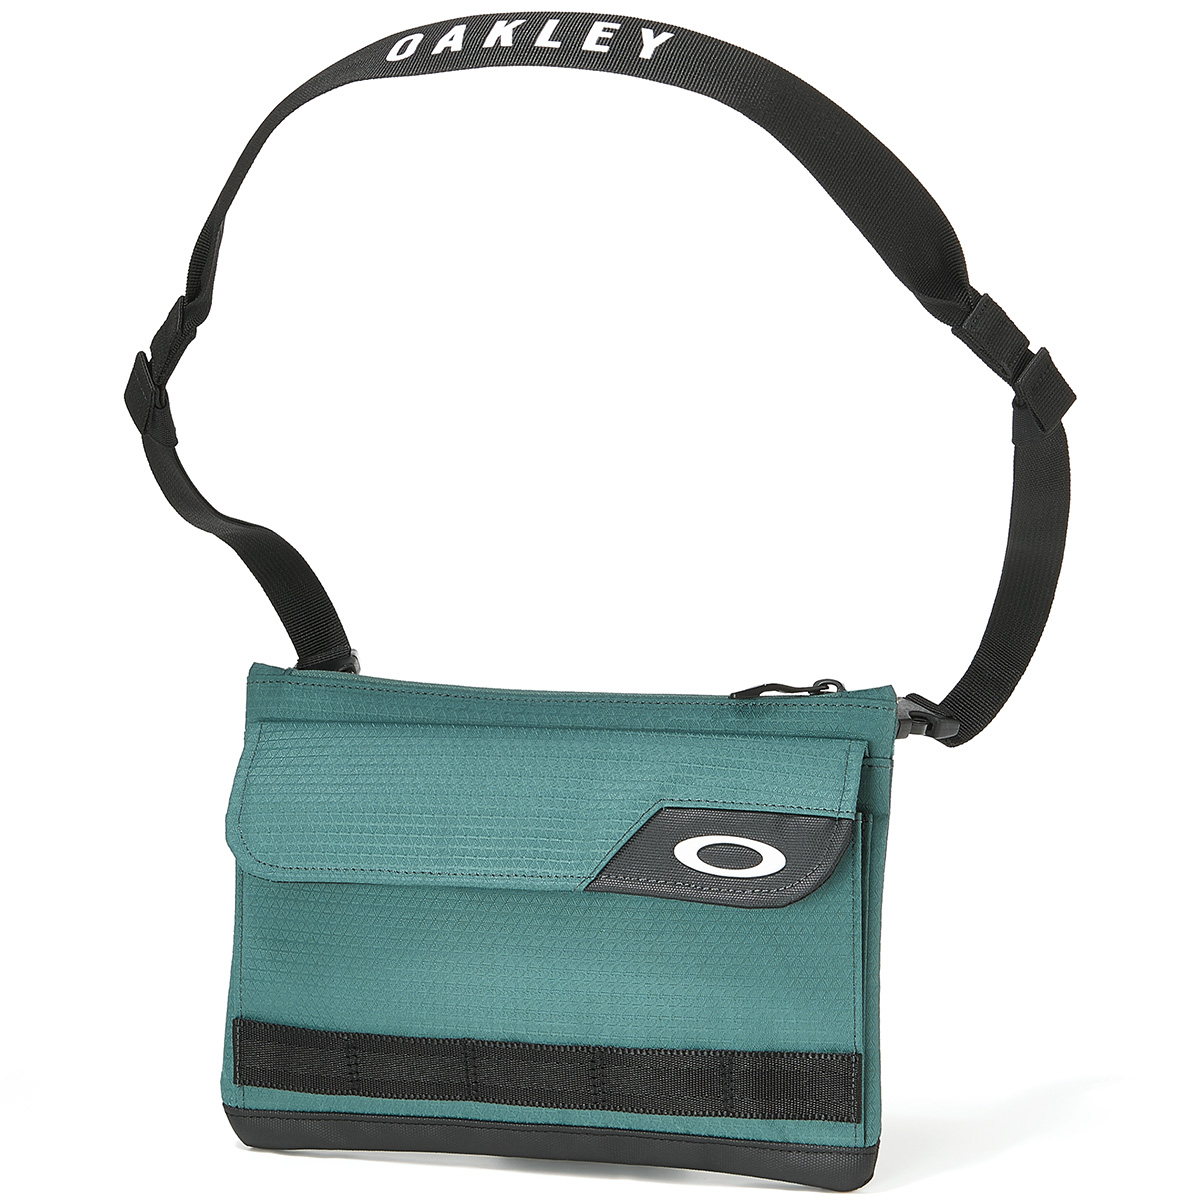 ESSENTIAL MUSETTE 2.0 マルチバッグ